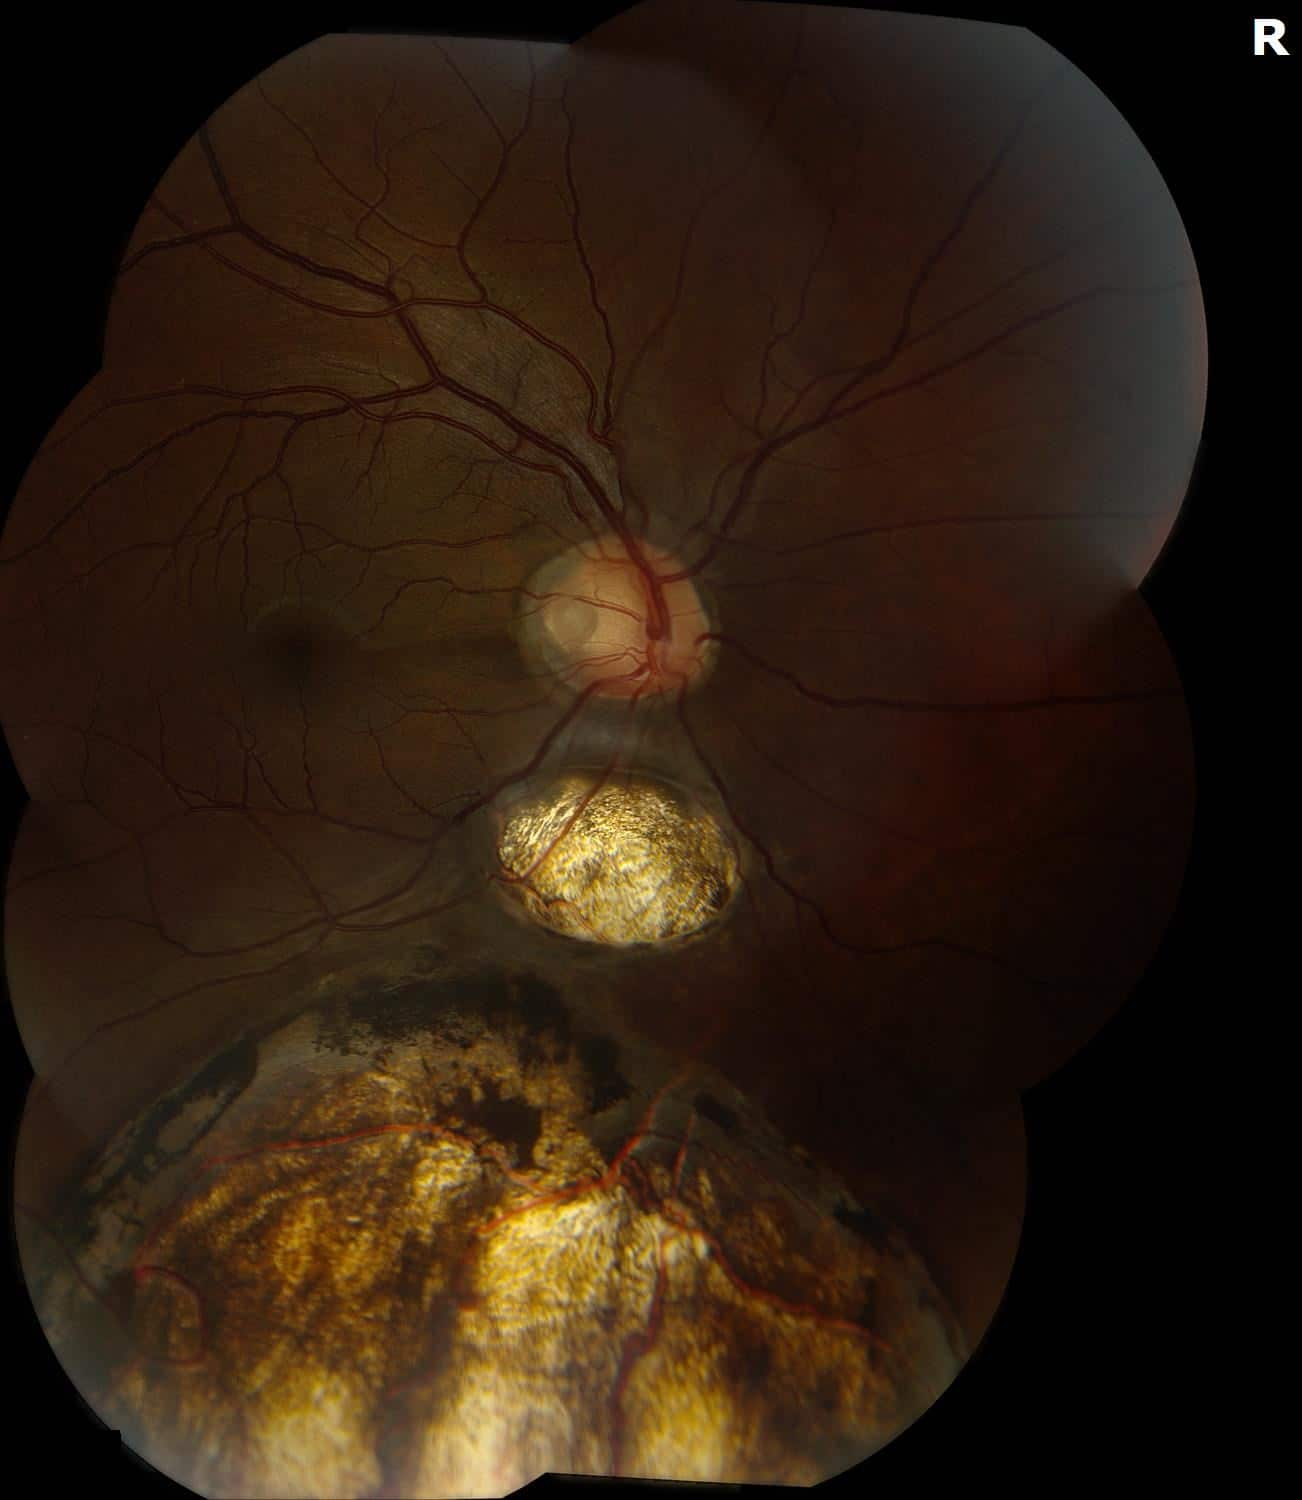 Abnormal Retinal Appearance